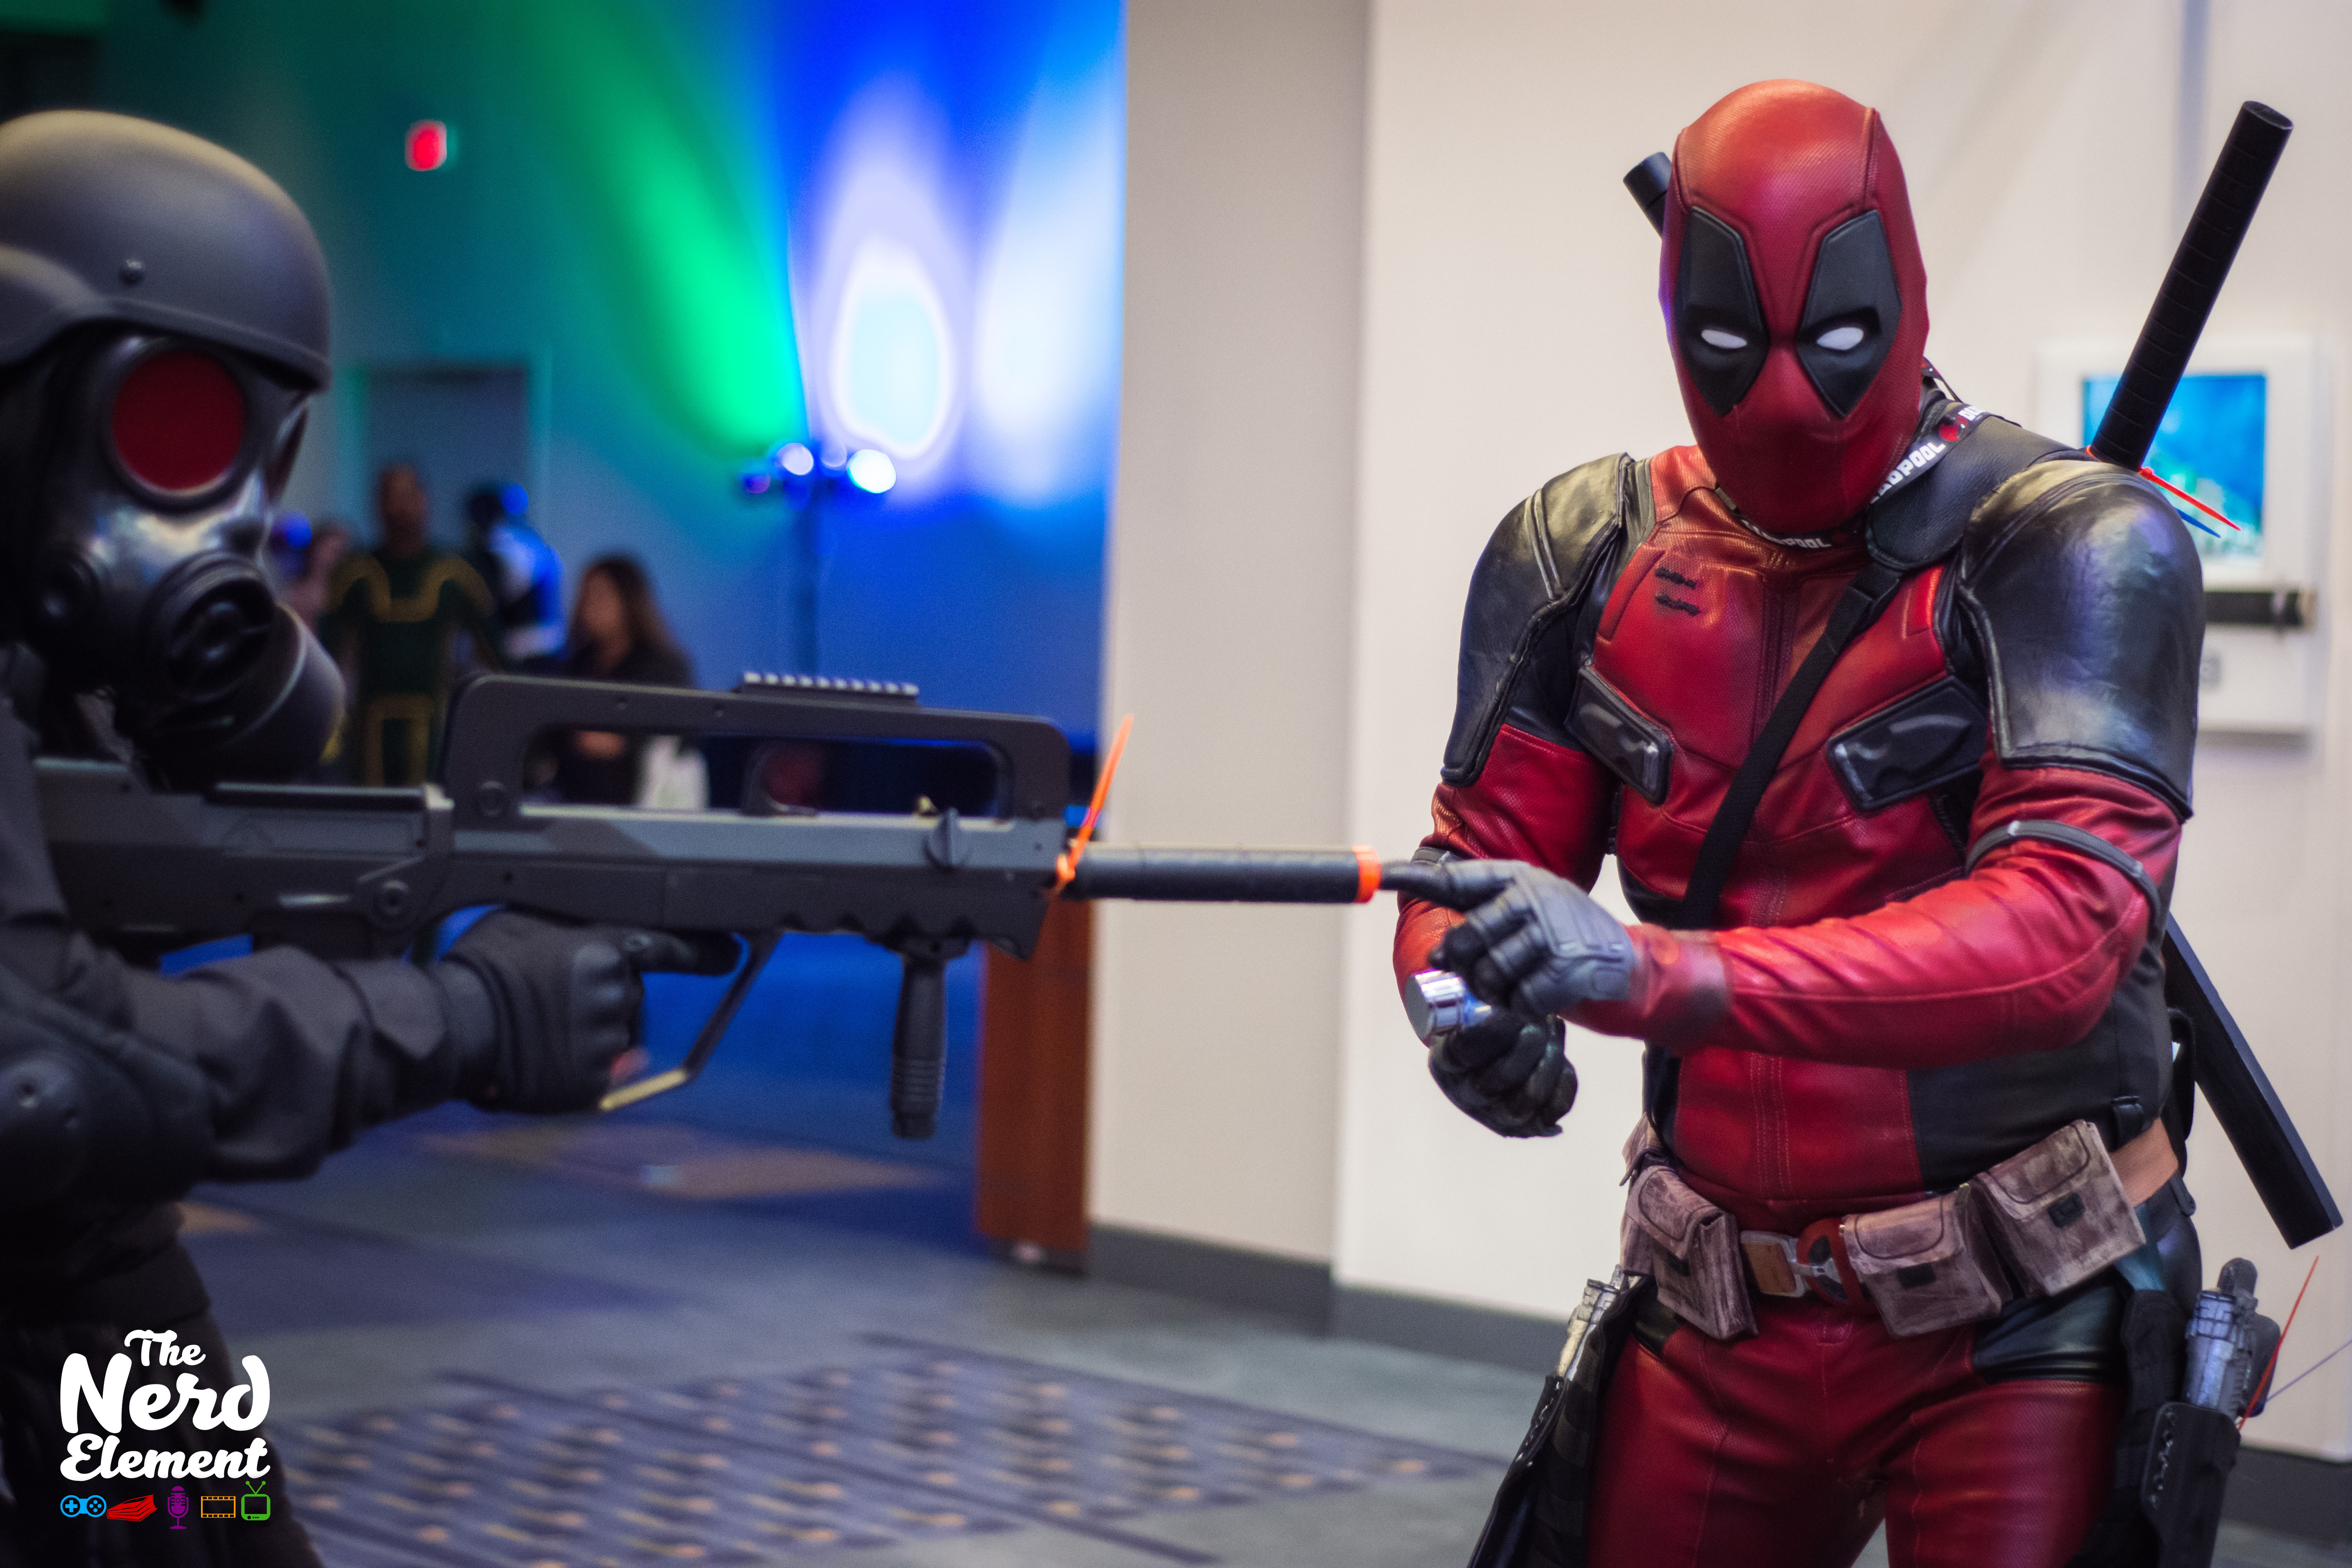 Umbrella Corp. Soldier - Resident Evil and Deadpool